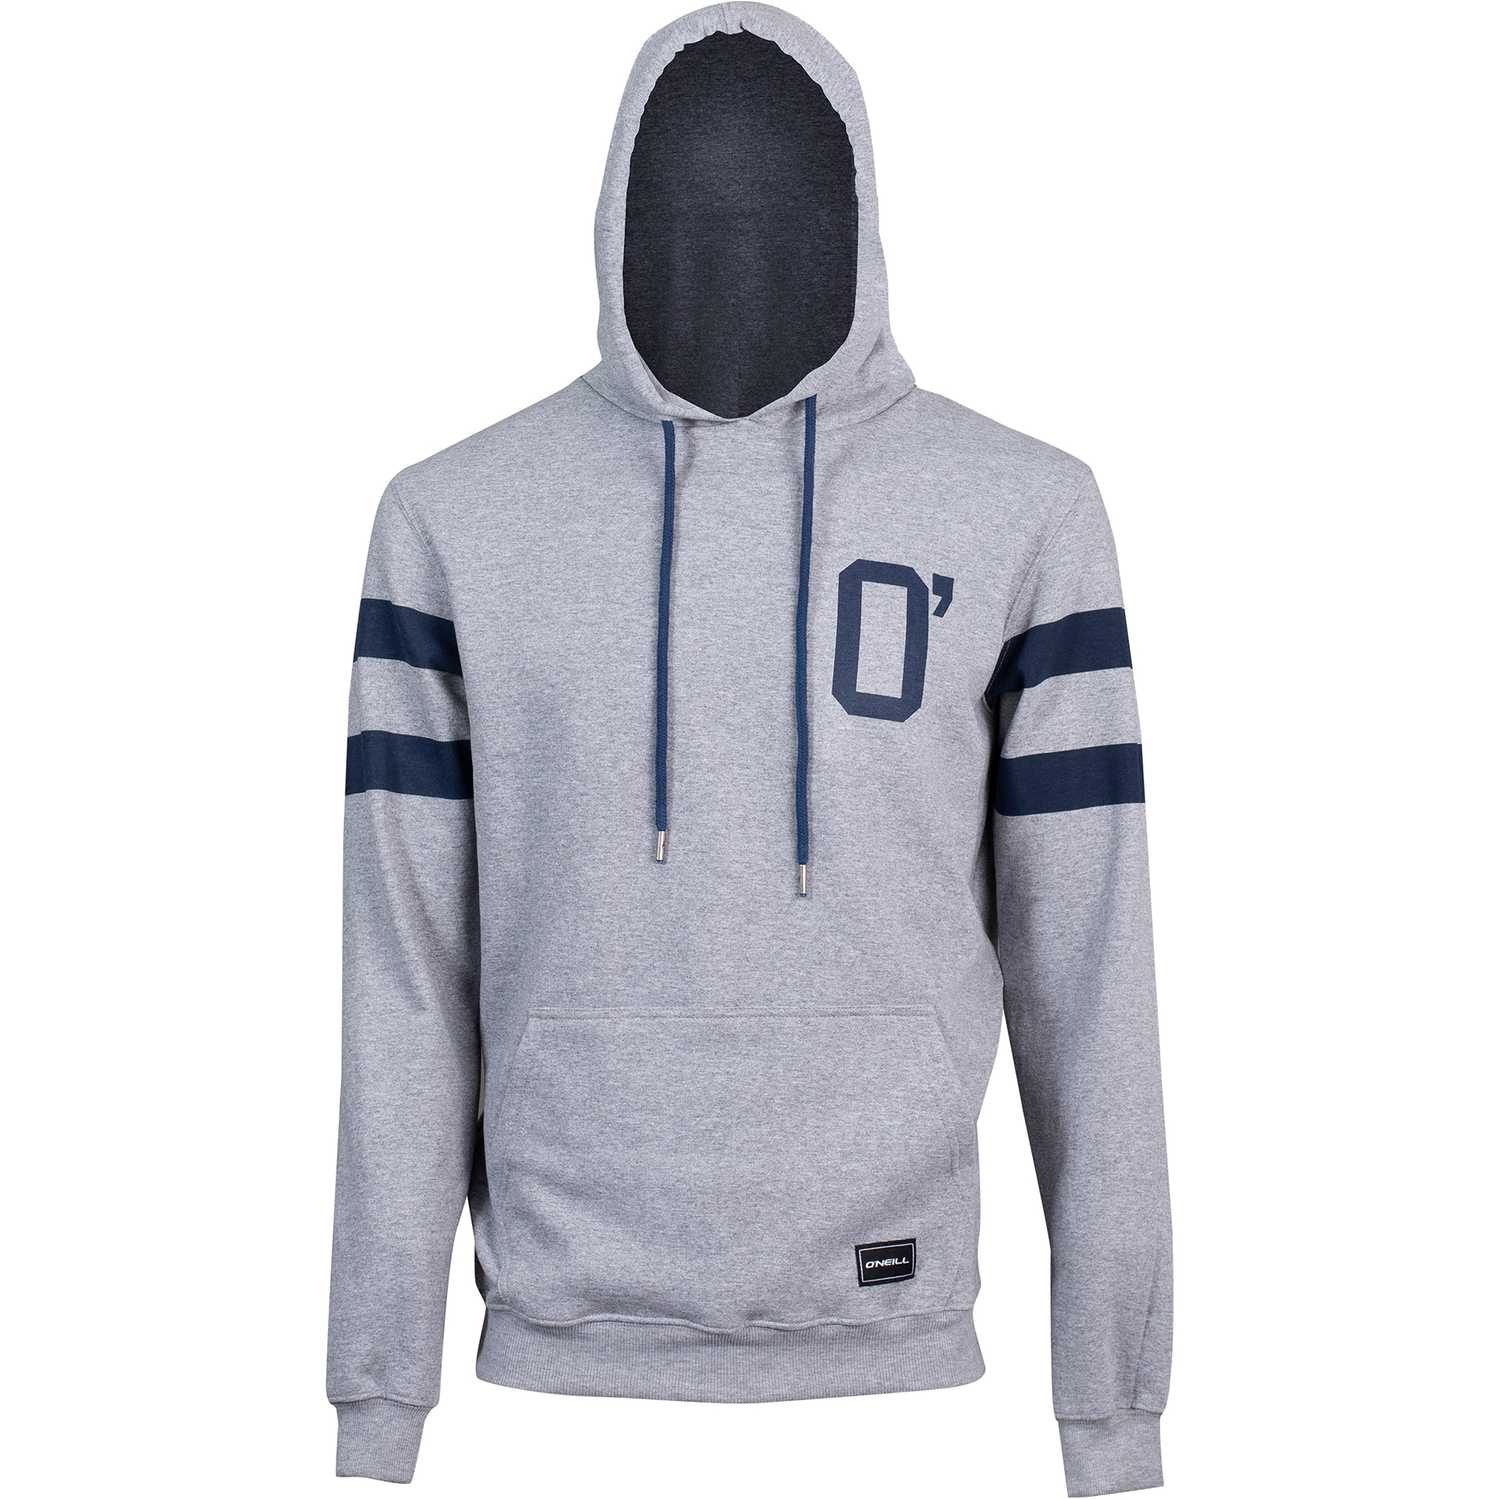 ONEILL lm o' hoodie Gris / azul Hoodies y Sweaters Fashion